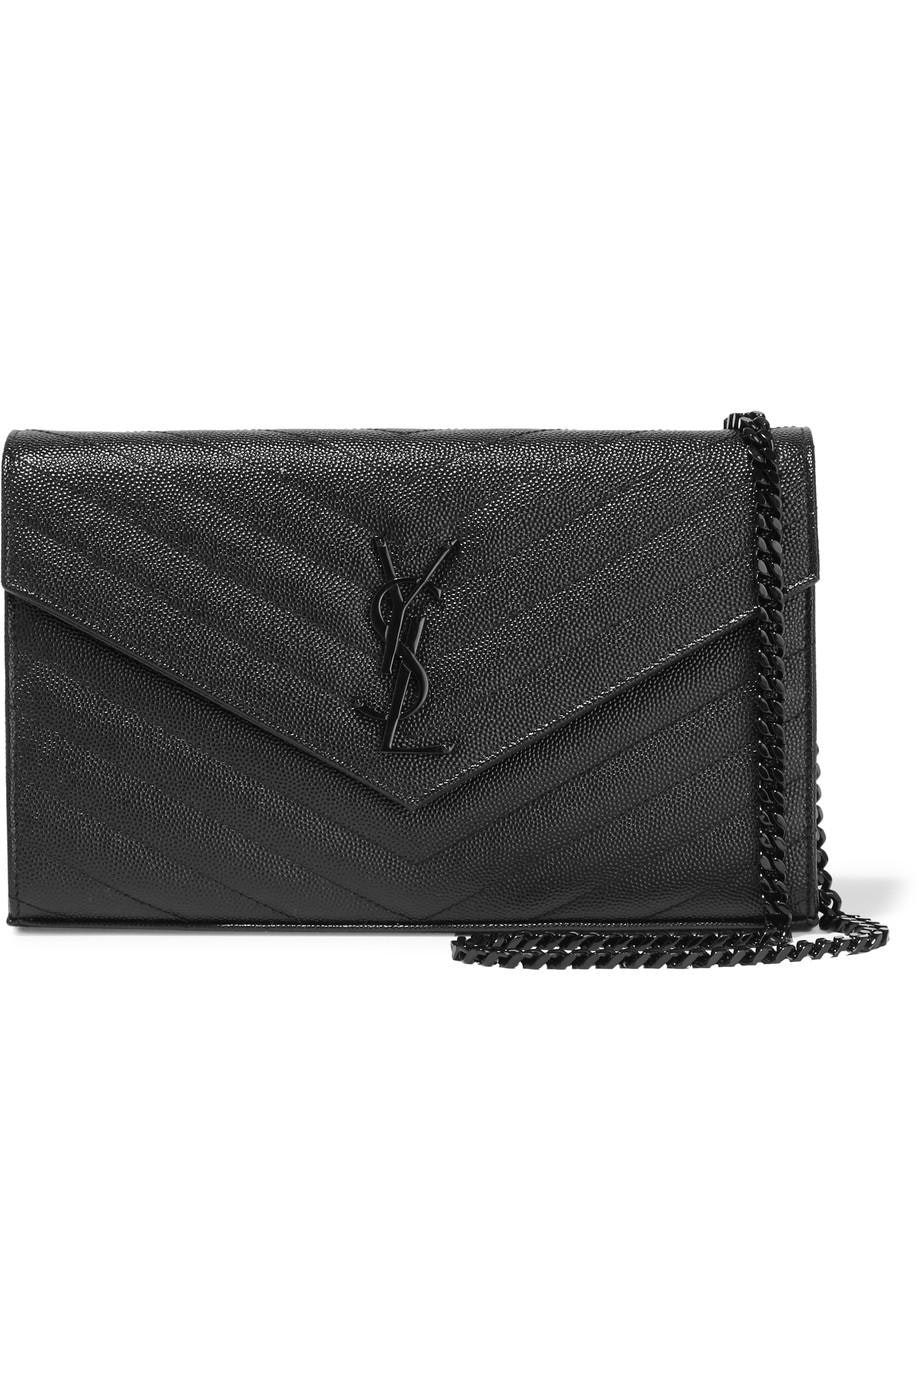 Saint Laurent Monogram Envelope Chain Wallet Black